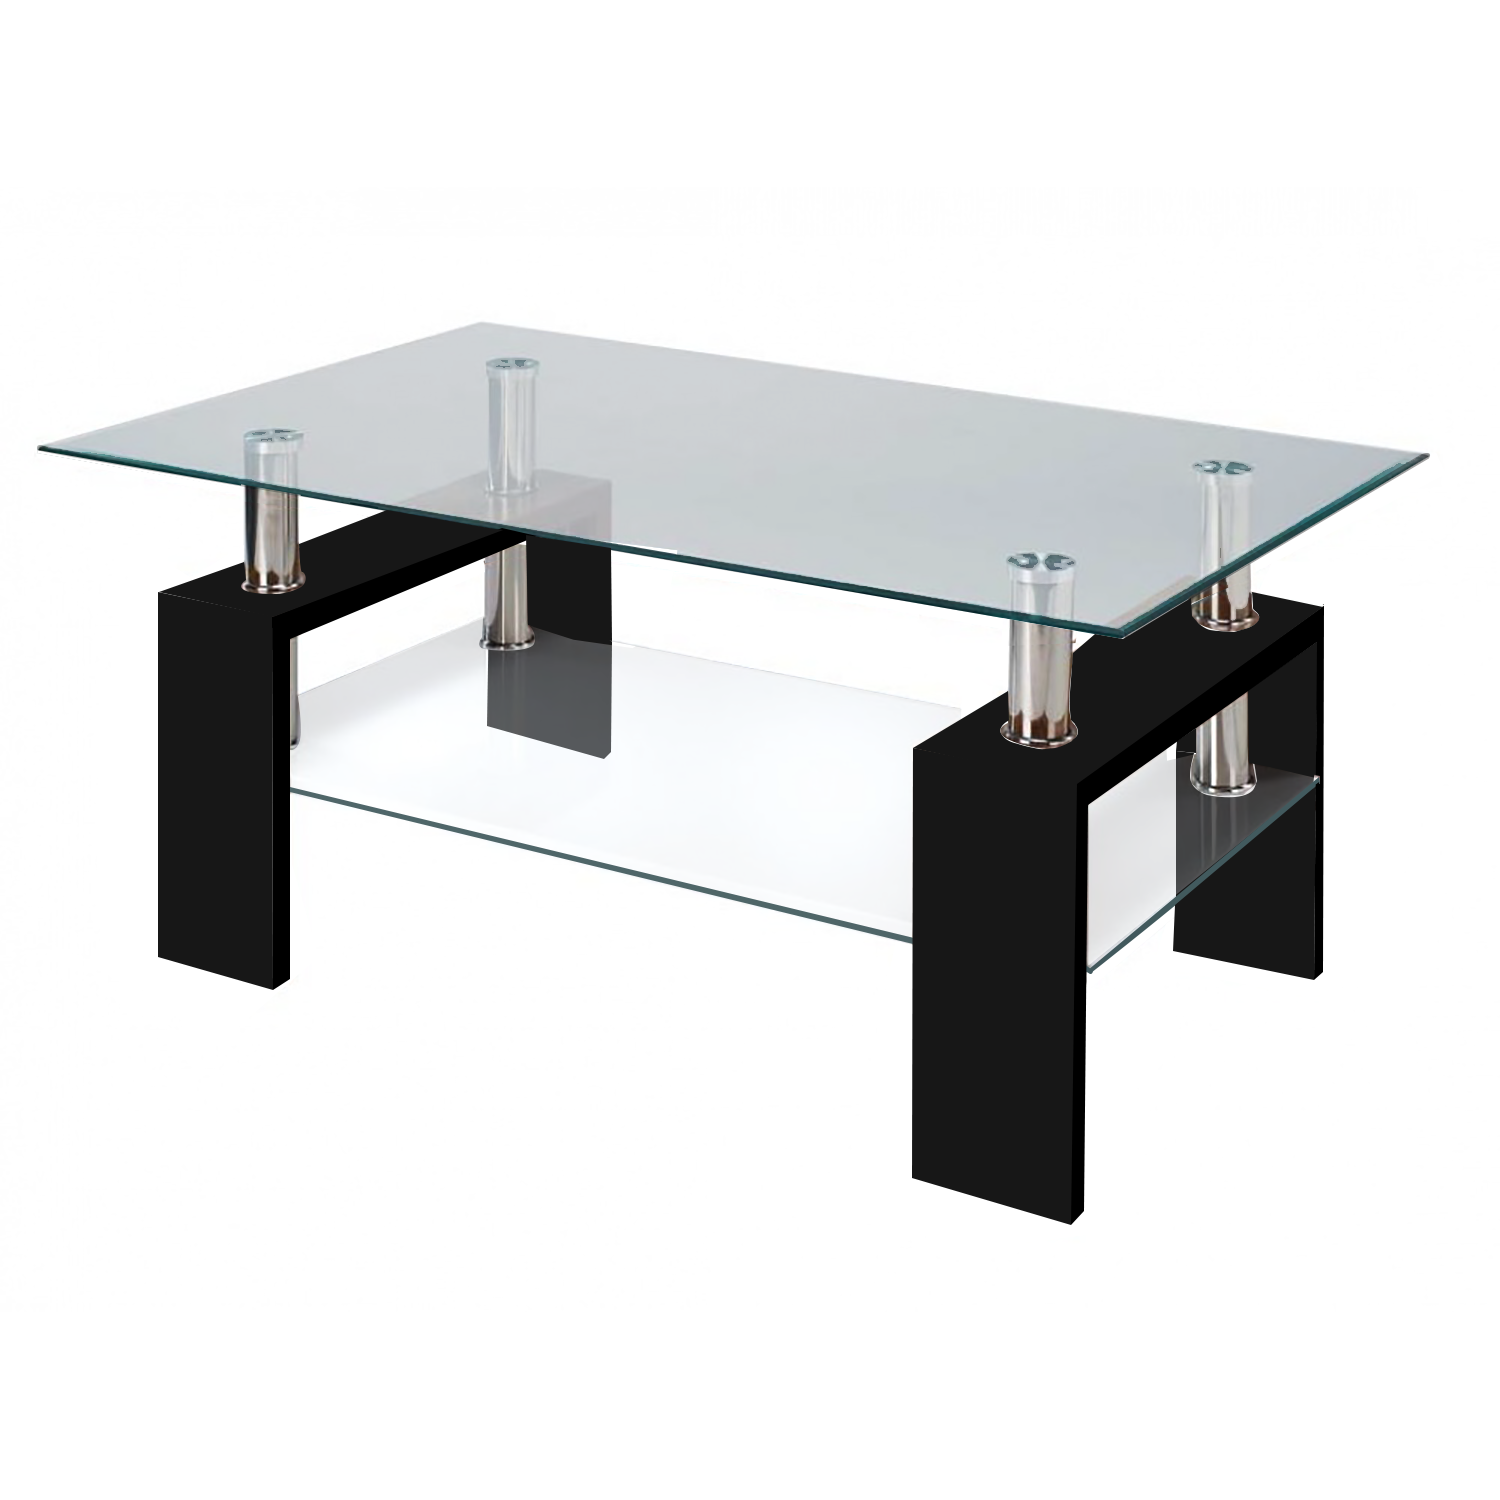 glass table modern glass black coffee table with shelf contemporary living room UMNYFHF